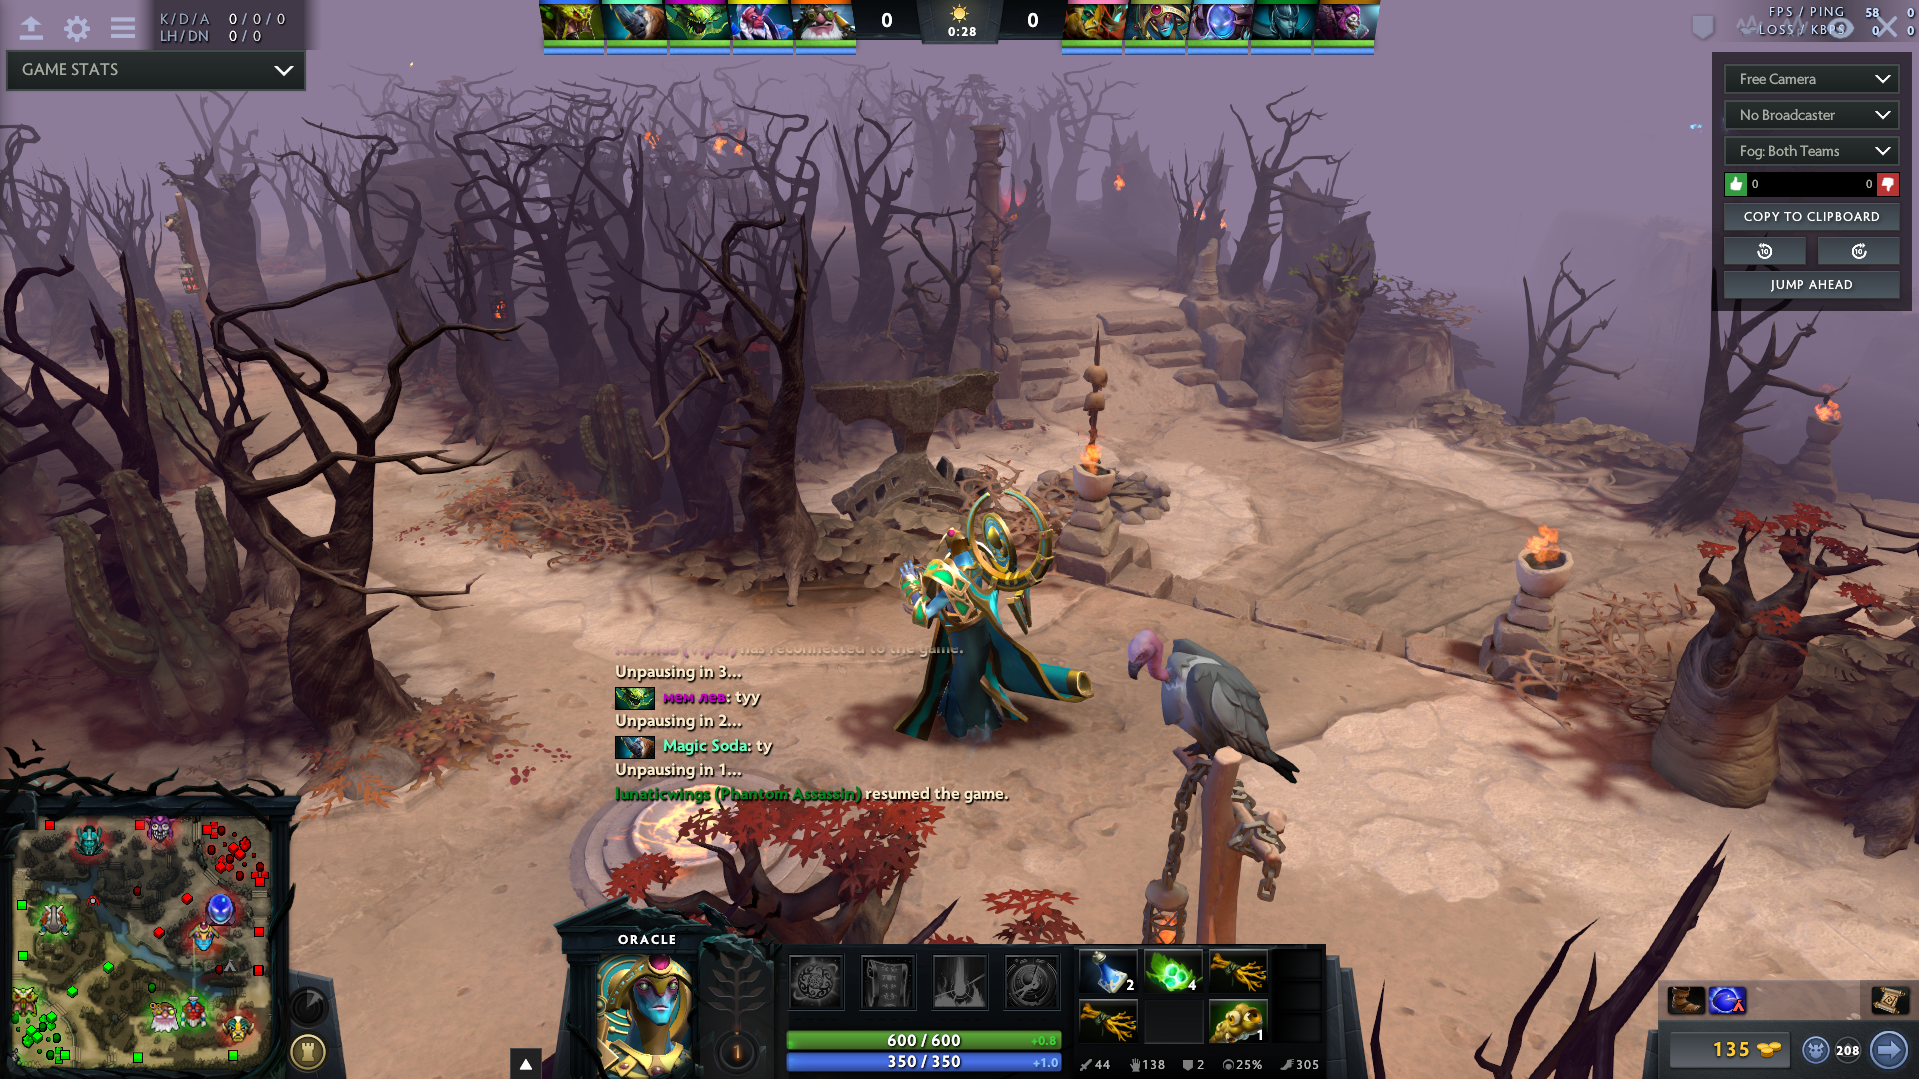 Large Post Of Bugs In 700 DotA2